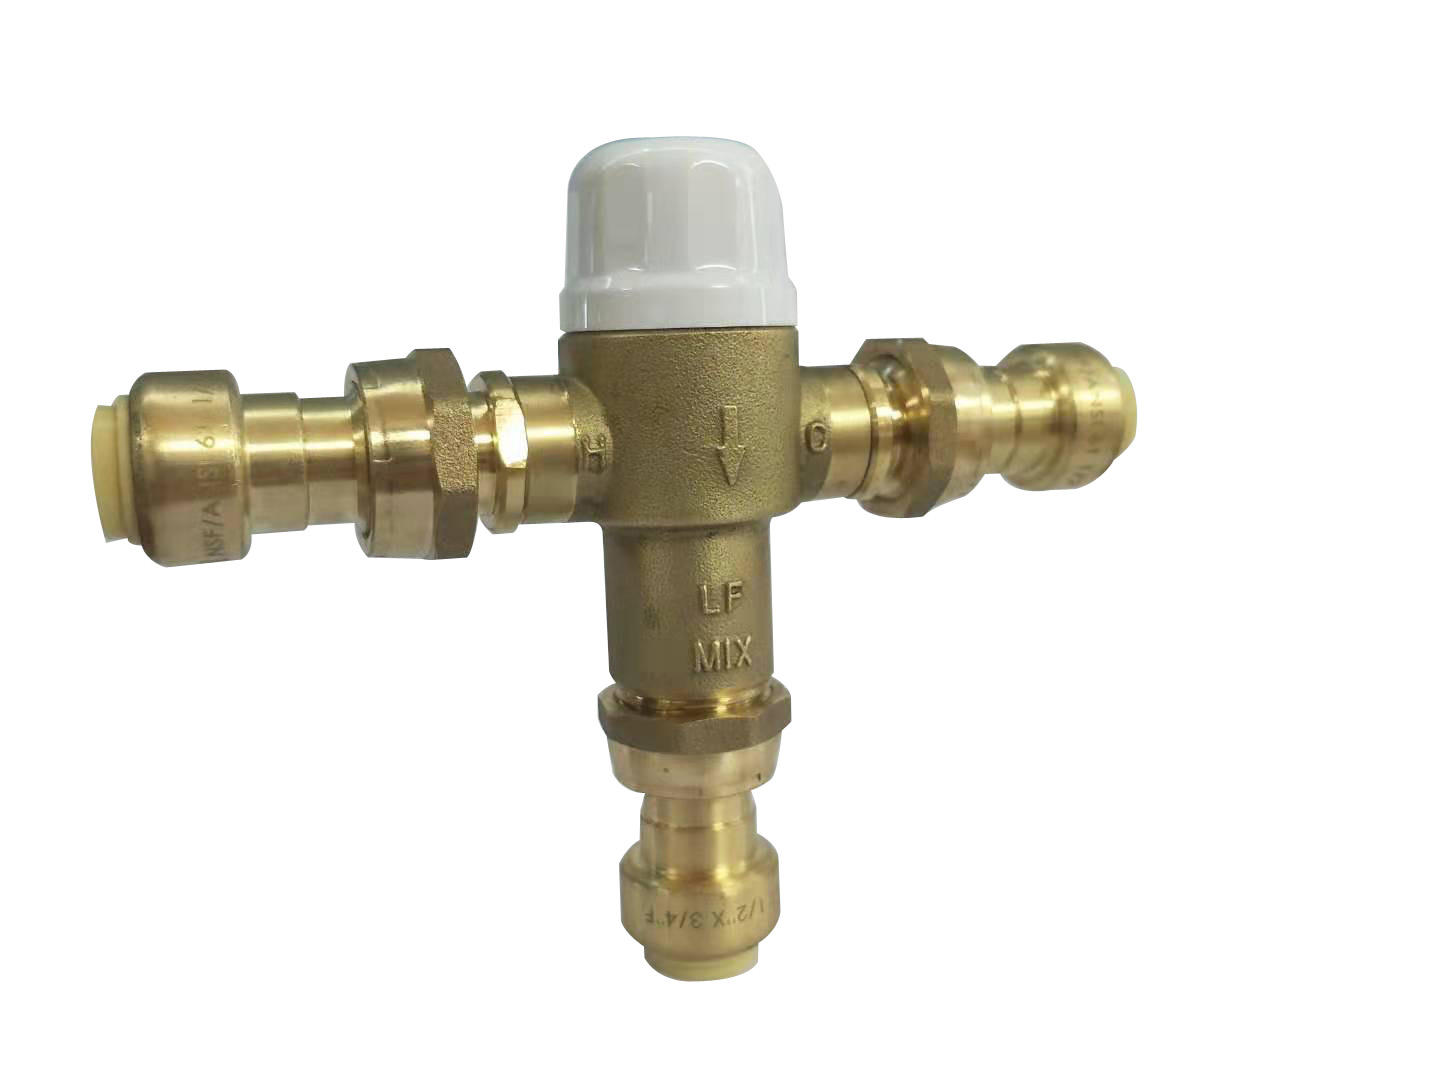 thermostatic best thermostatic shower valve thermostatic manufacturer for shopping malls-1